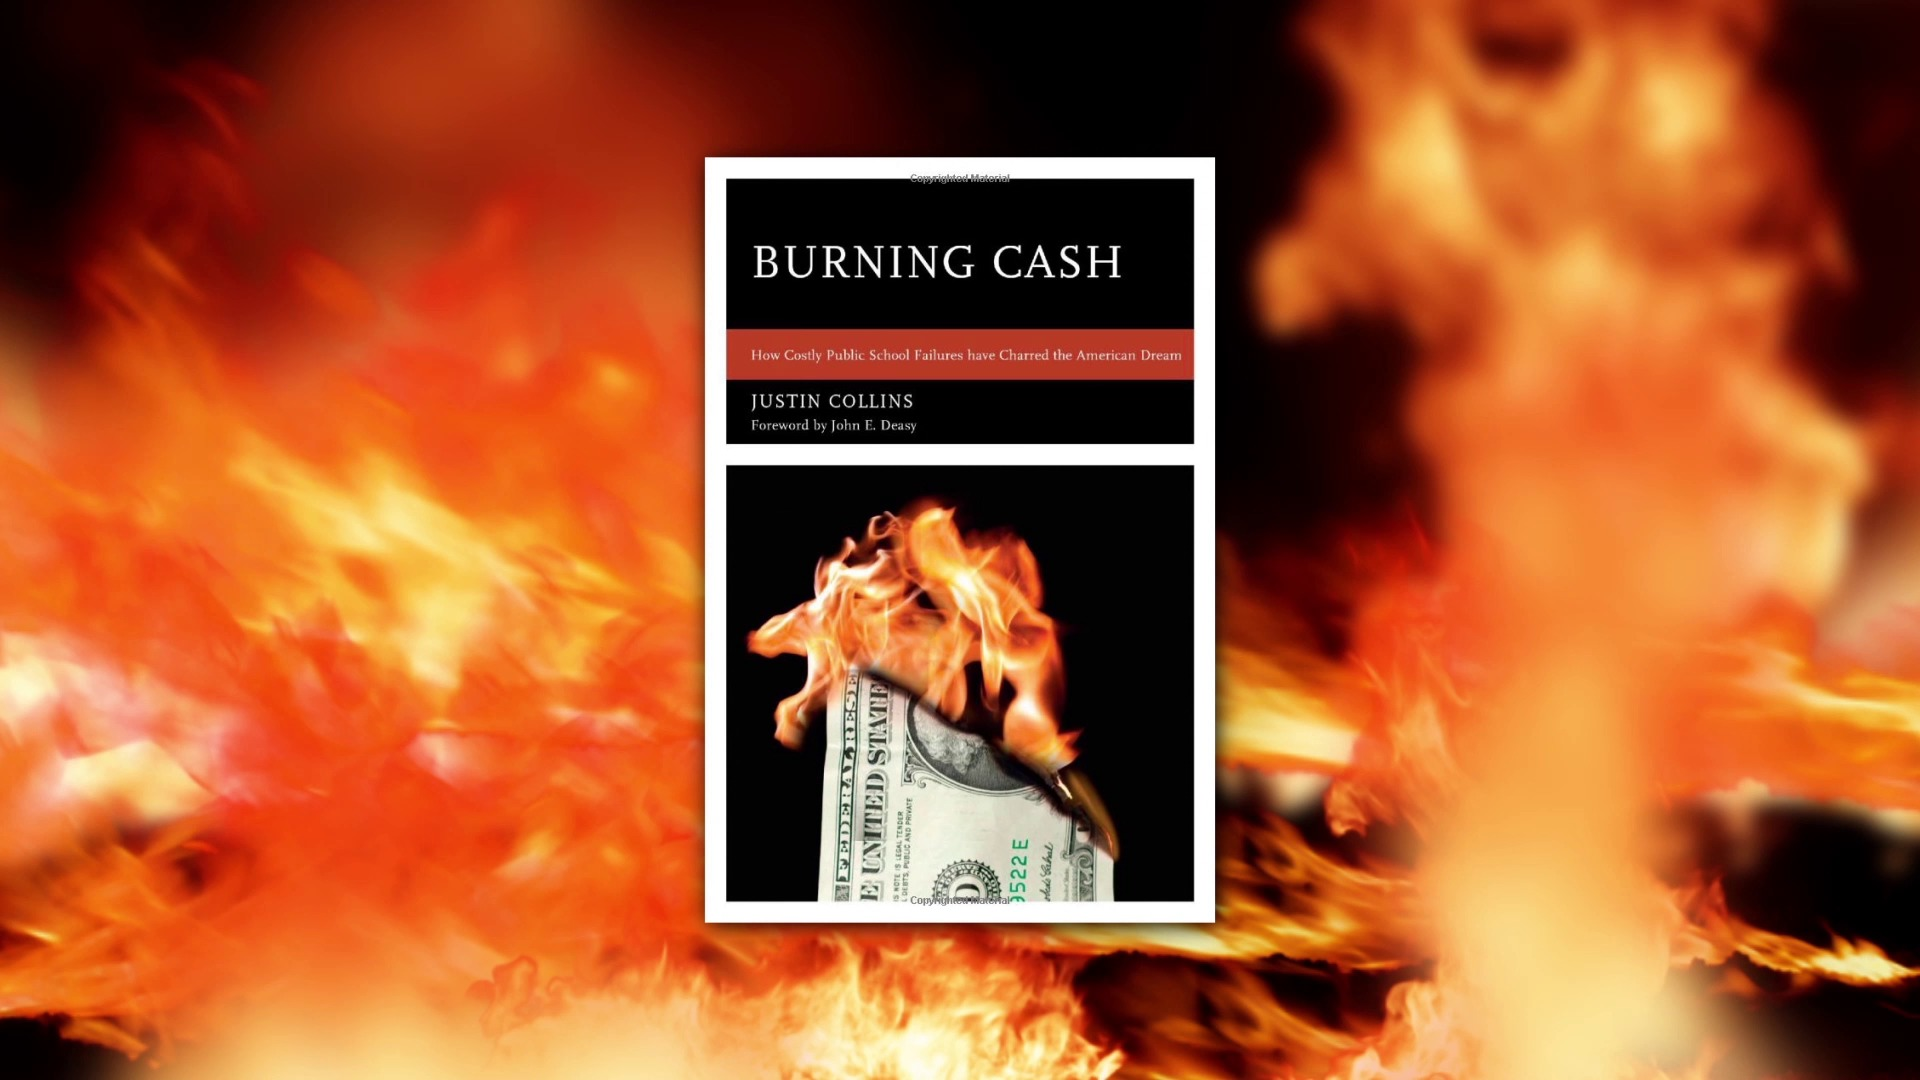 A thumbnail for the Burning Cash promotional video